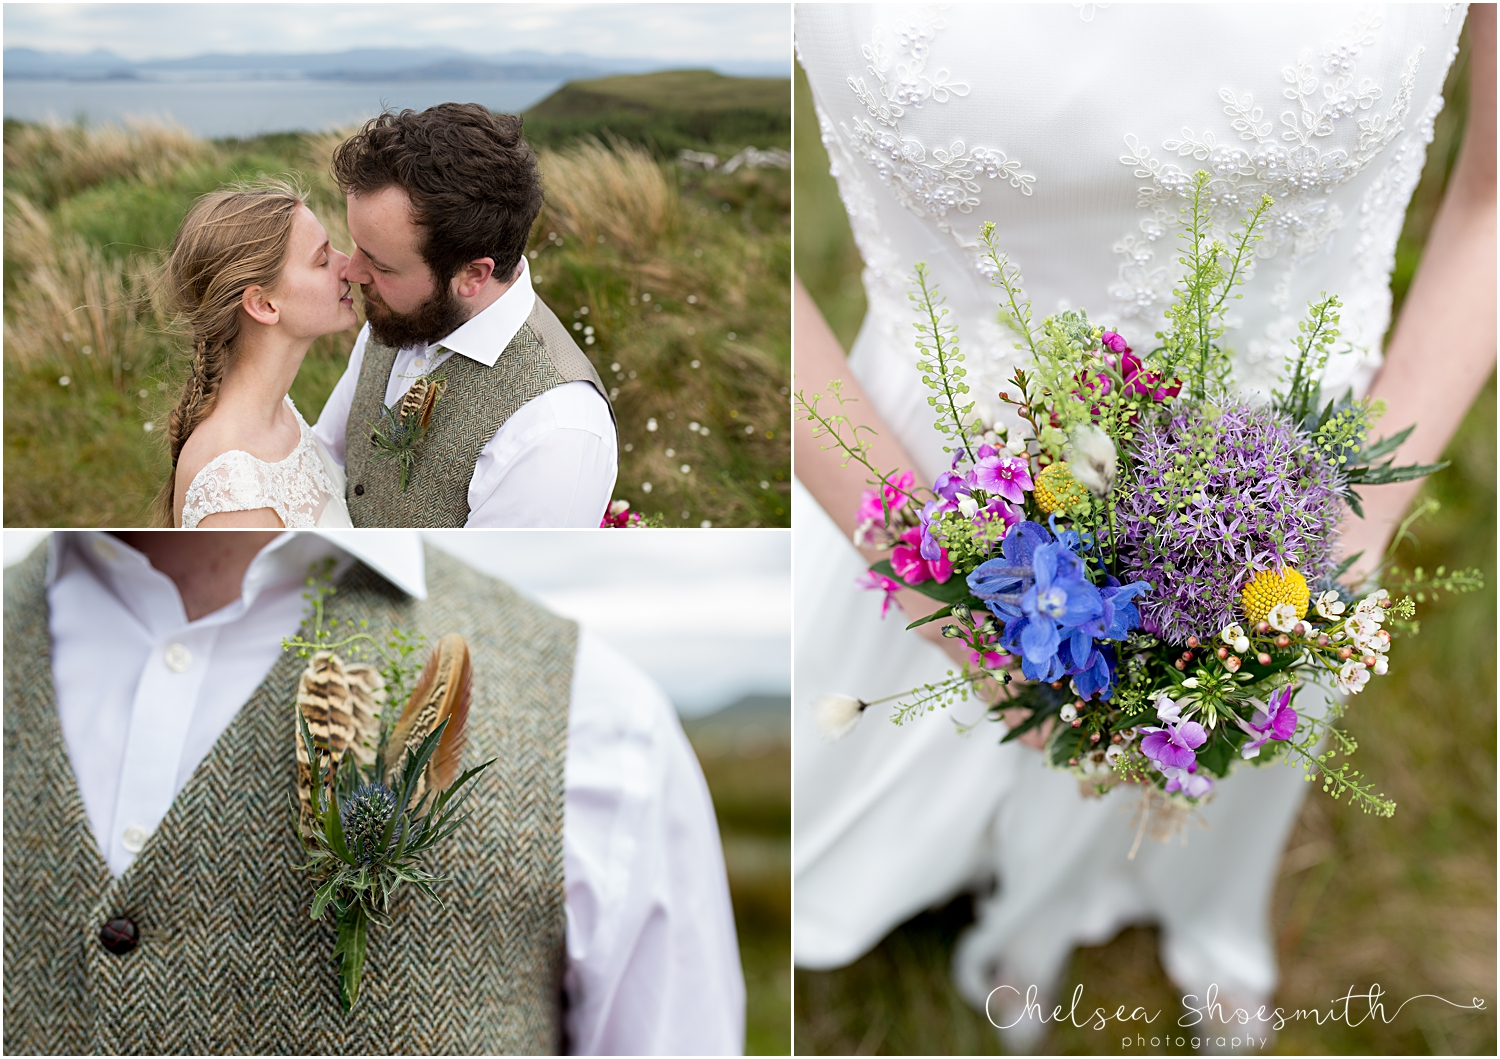 (9 of 20)Lindsay & Jacob Isle of Skye Elopement - Chelsea Shoesmith Photography_